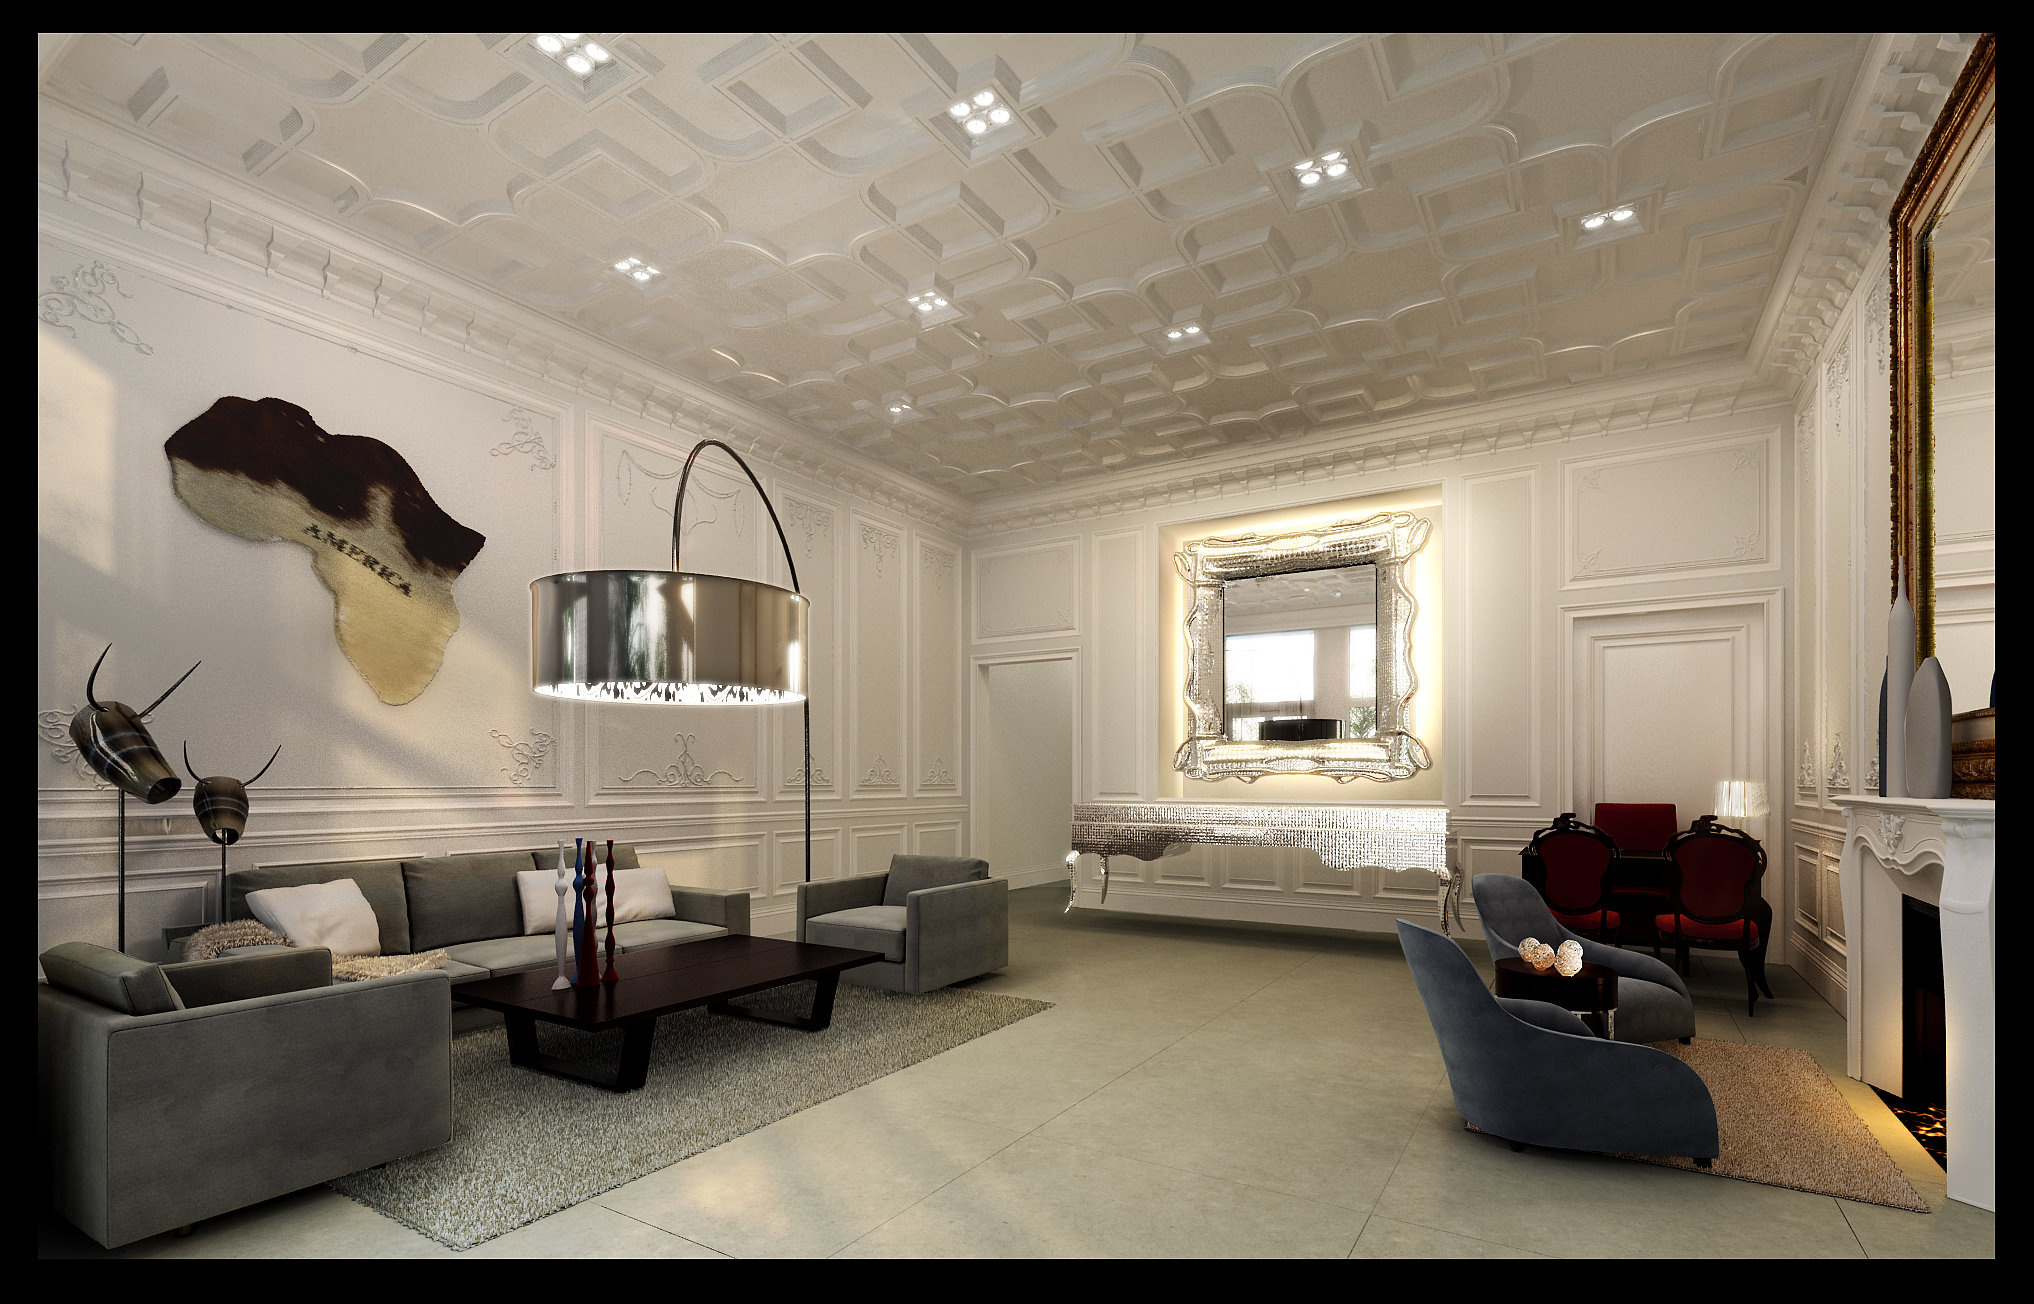 Top 10 reasons why you should develop a boutique for Independent boutique hotels